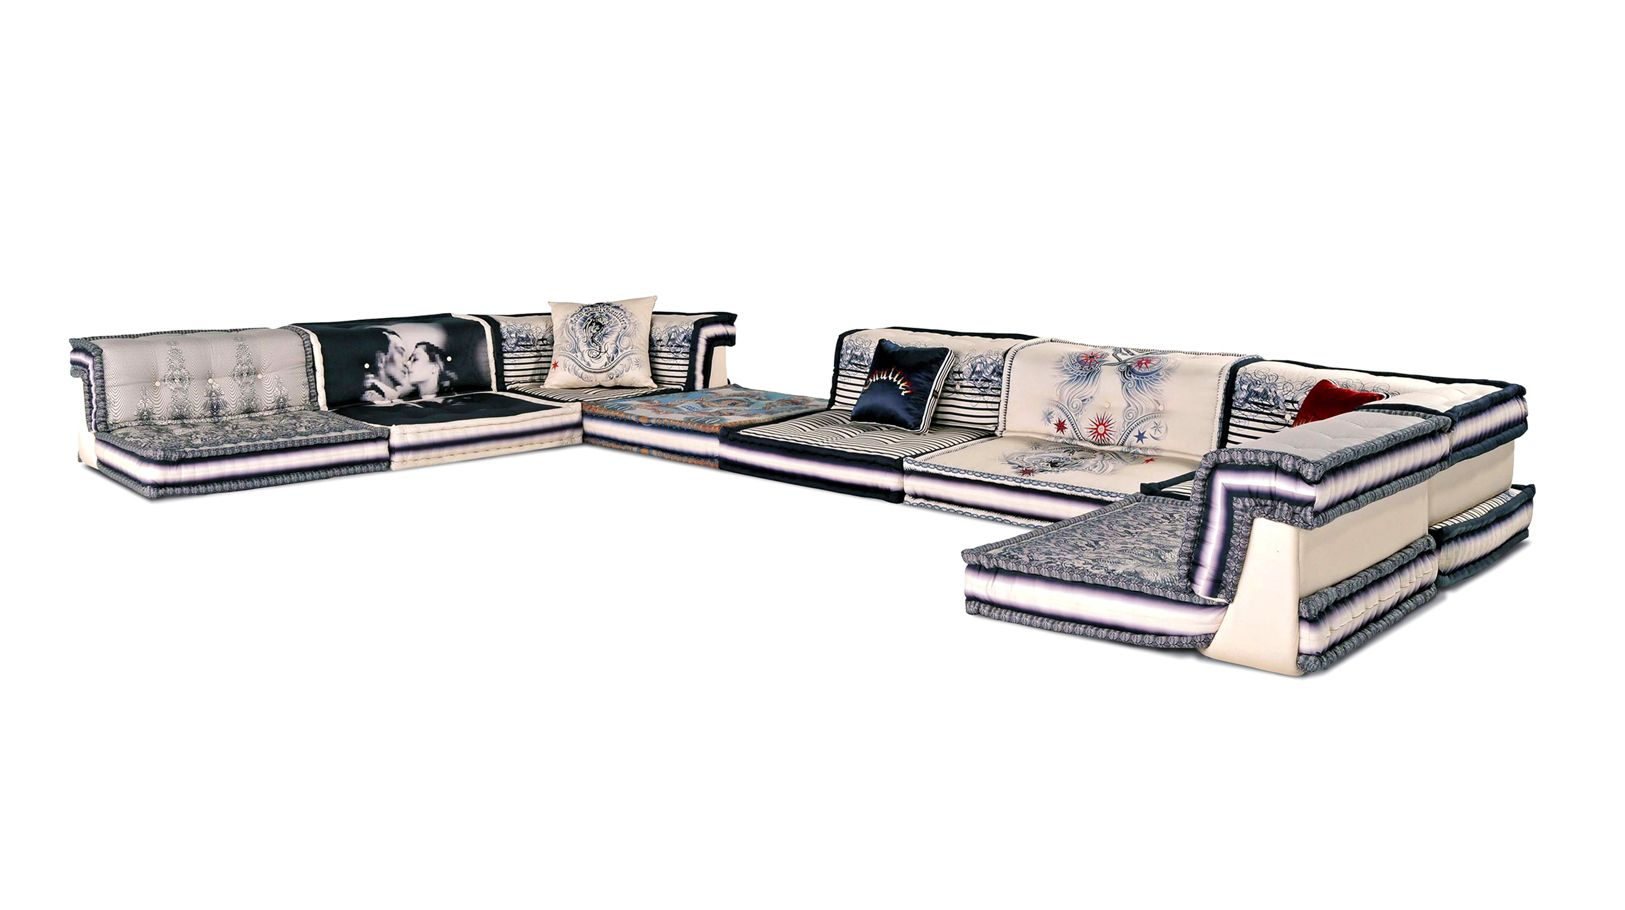 composizione couture jean paul gaultier mah jong roche. Black Bedroom Furniture Sets. Home Design Ideas